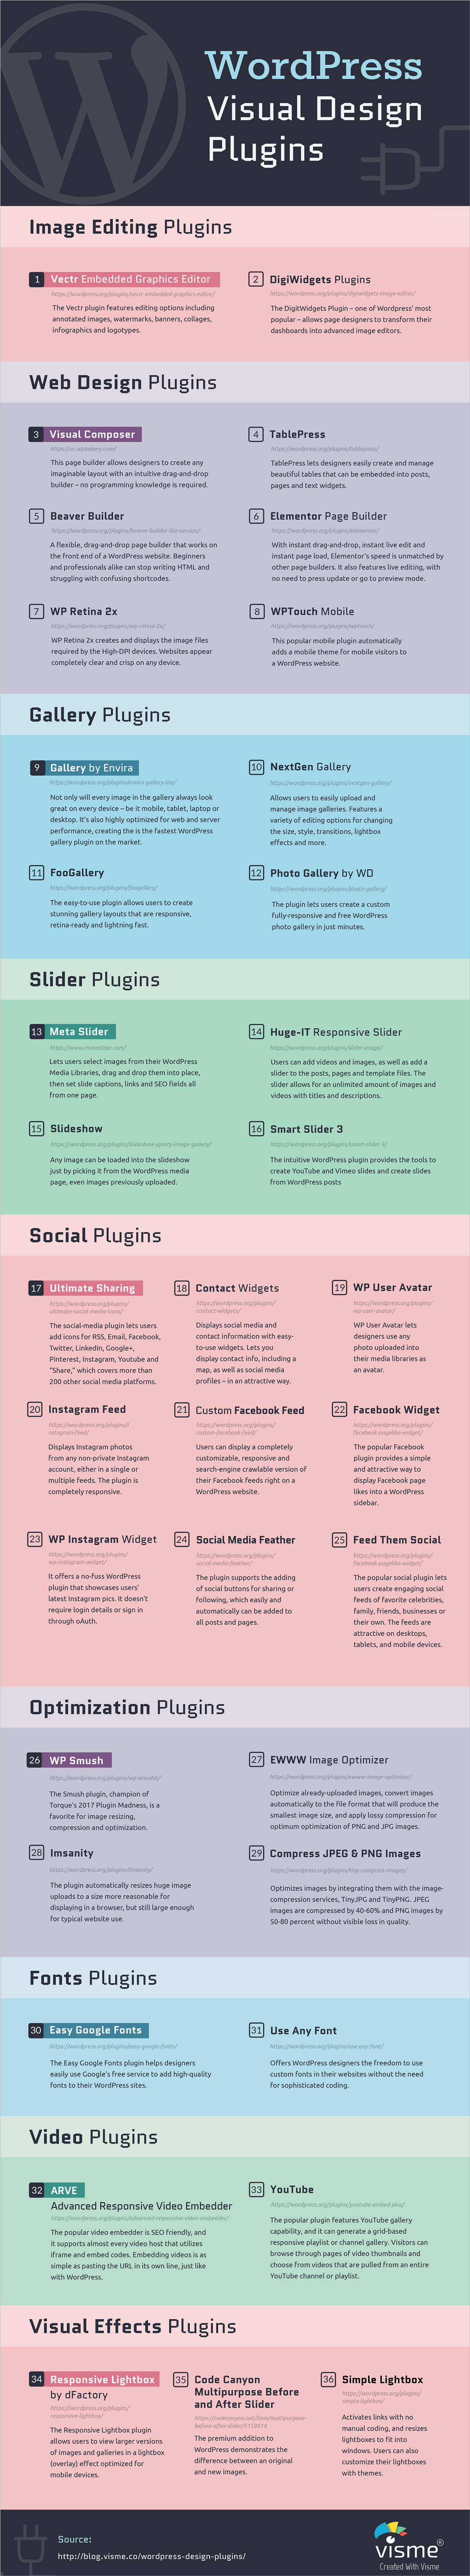 wp PLUGINS INFOGRAPHIC | From the blog of Nicholas C. Rossis, author of science fiction, the Pearseus epic fantasy series and children's books